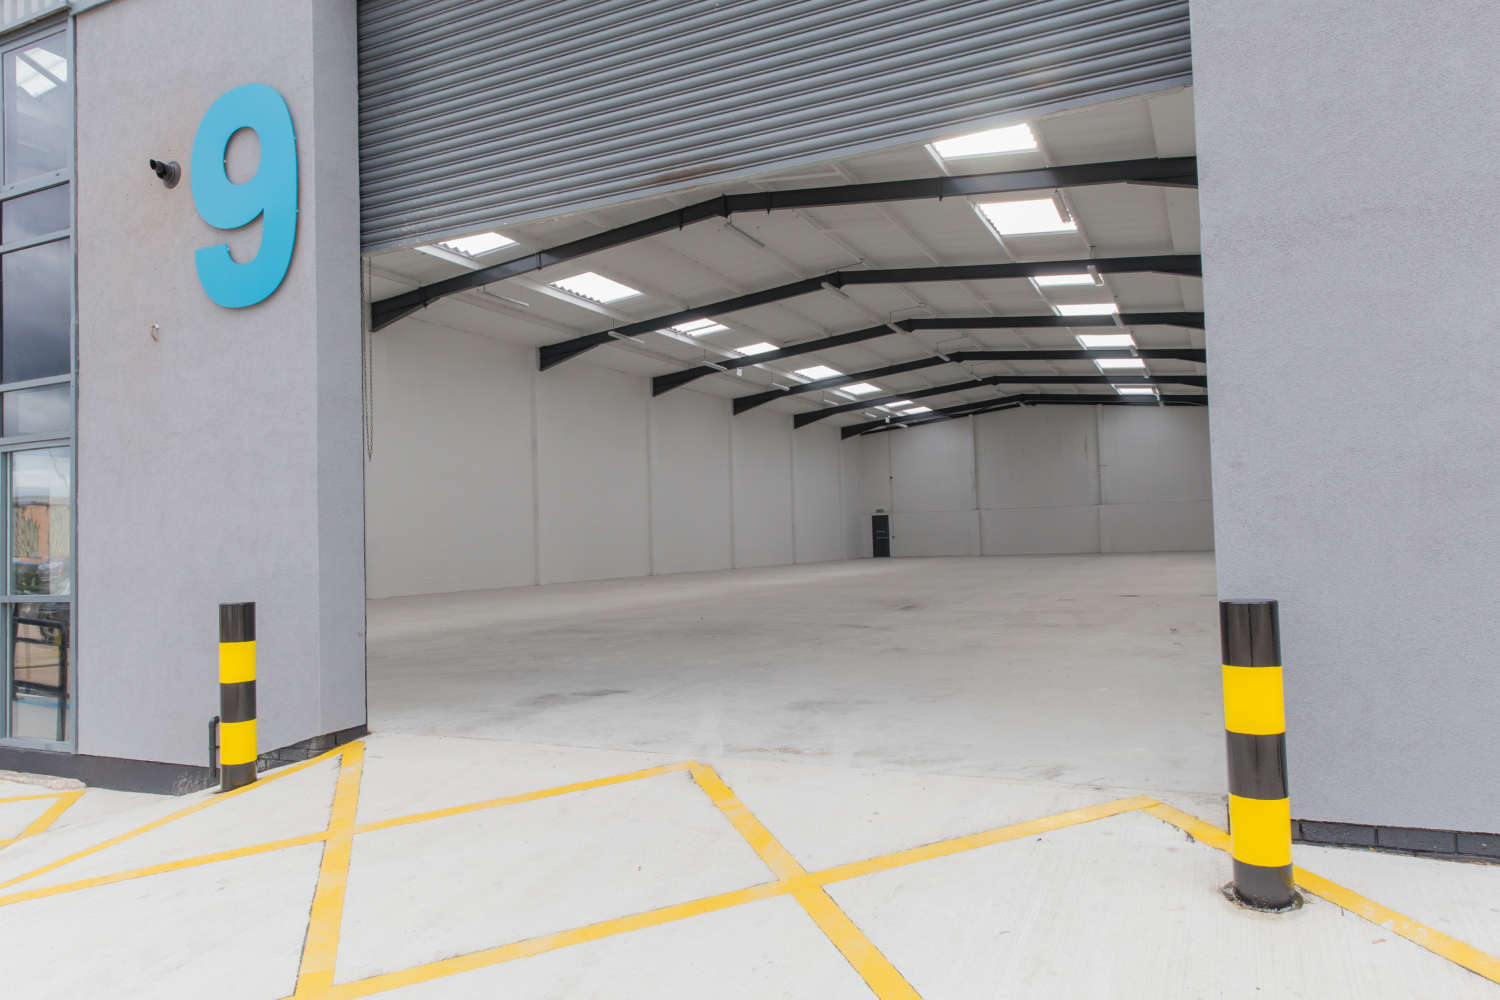 Industrial and logistics Leeds, LS10 1AG - Unit 10 Orbital Industry Park - 5120